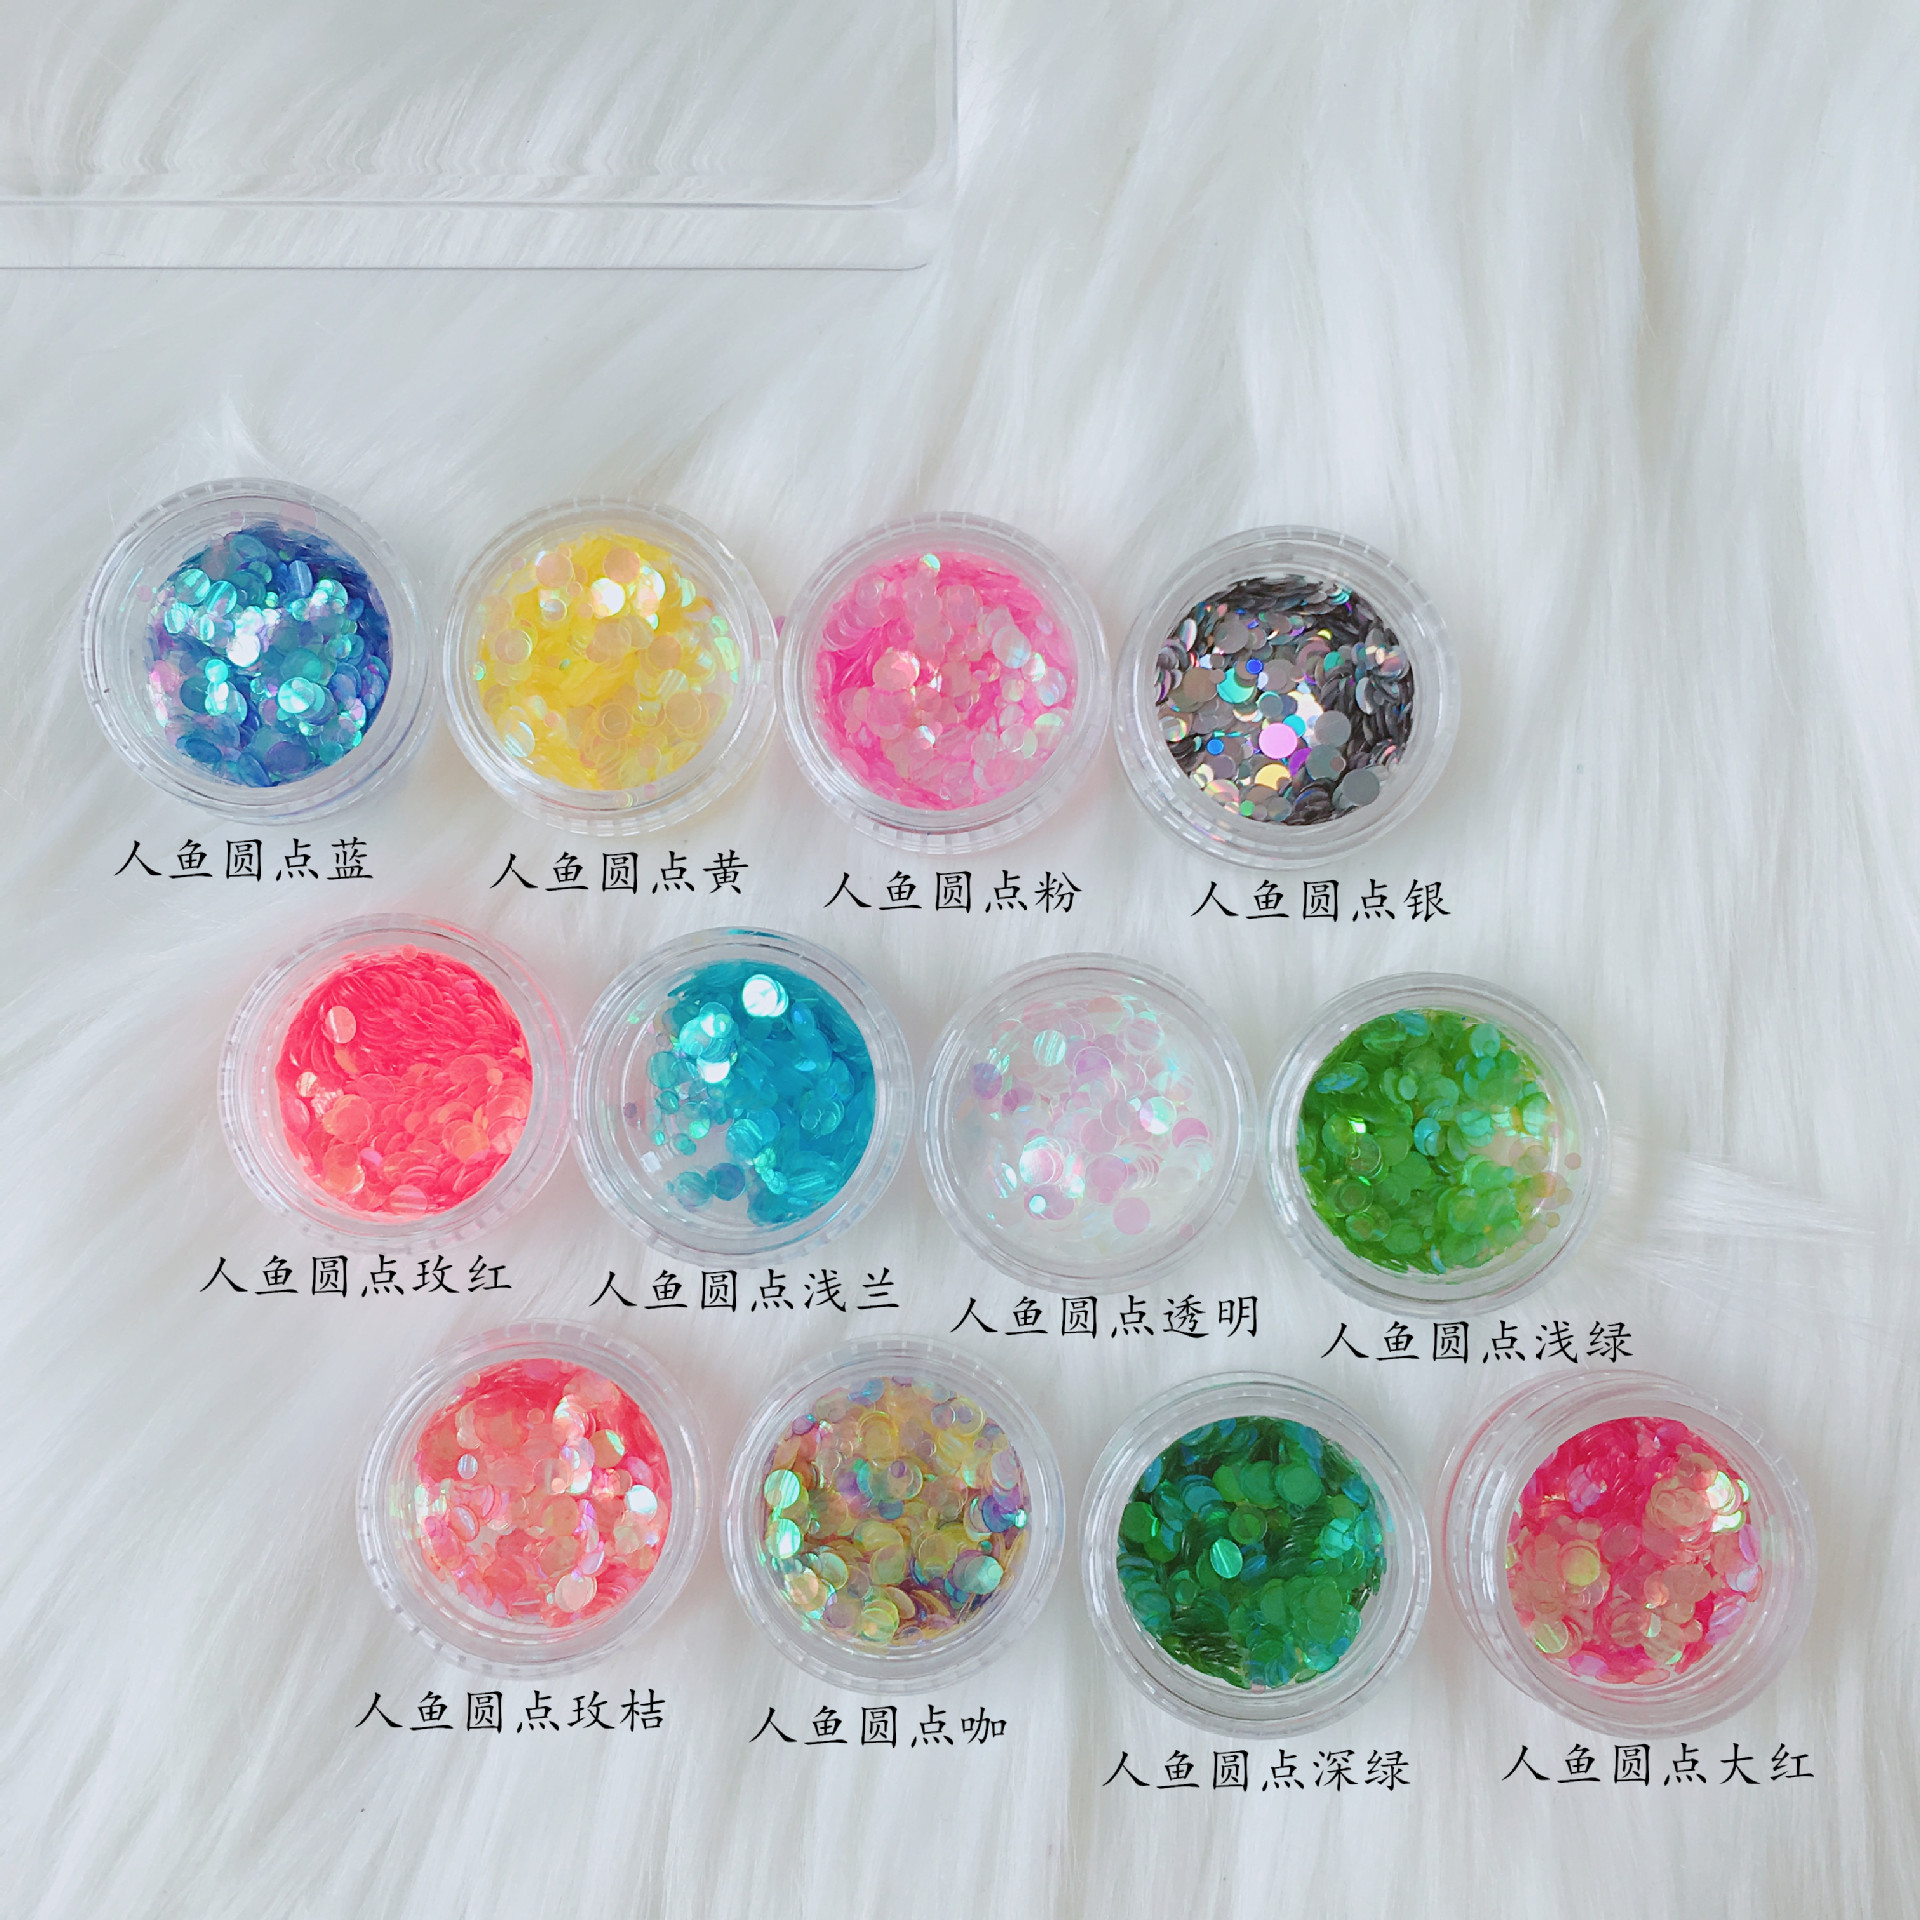 Nail Sequins Eye Makeup Symphony Gradient Shiny Size Mixed Scale Sequin Nail DIY Jewelry Nail Sticker